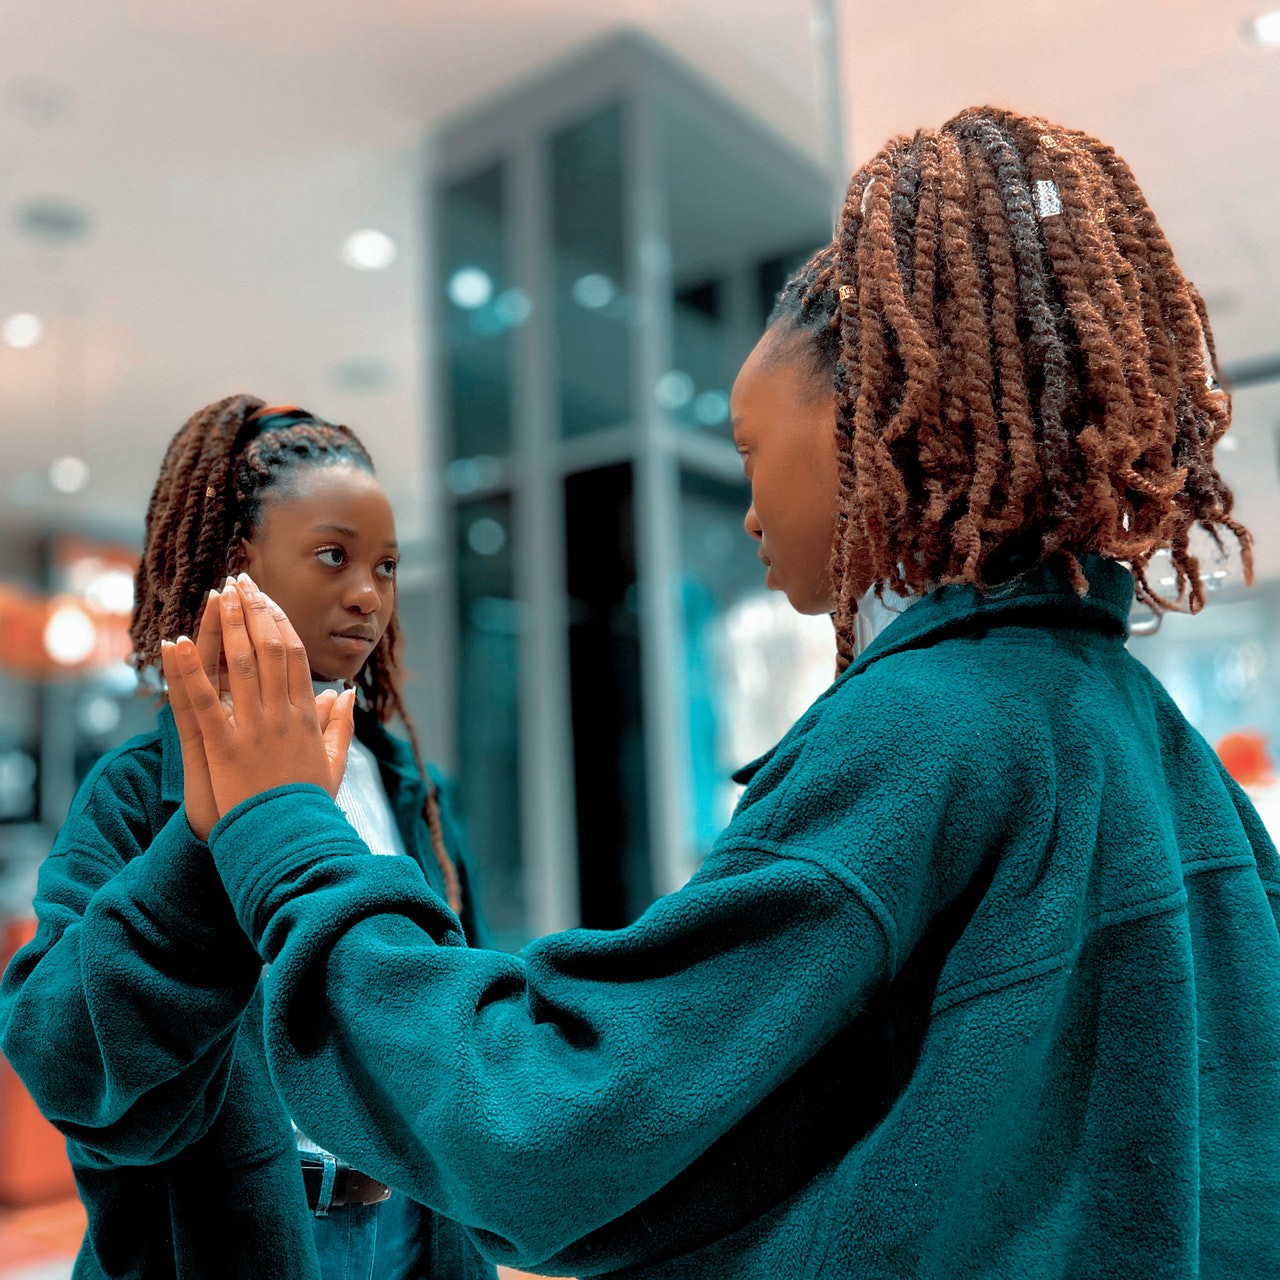 Woman looking at herself in a mirror.